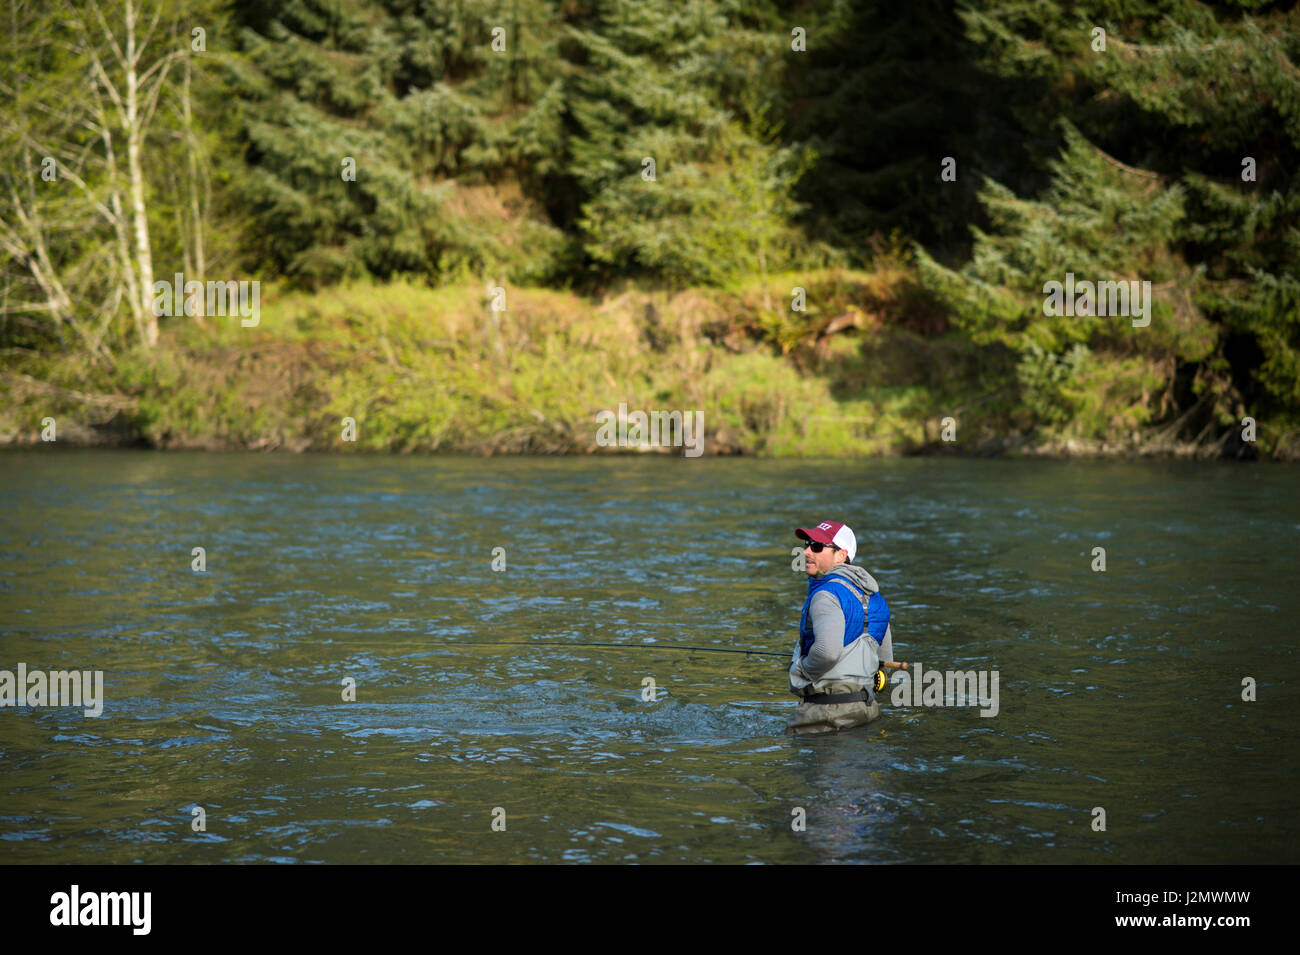 Angler Fly Fishing for Steelhead on the Queets River, Olympic Peninsula, Washington - Stock Image